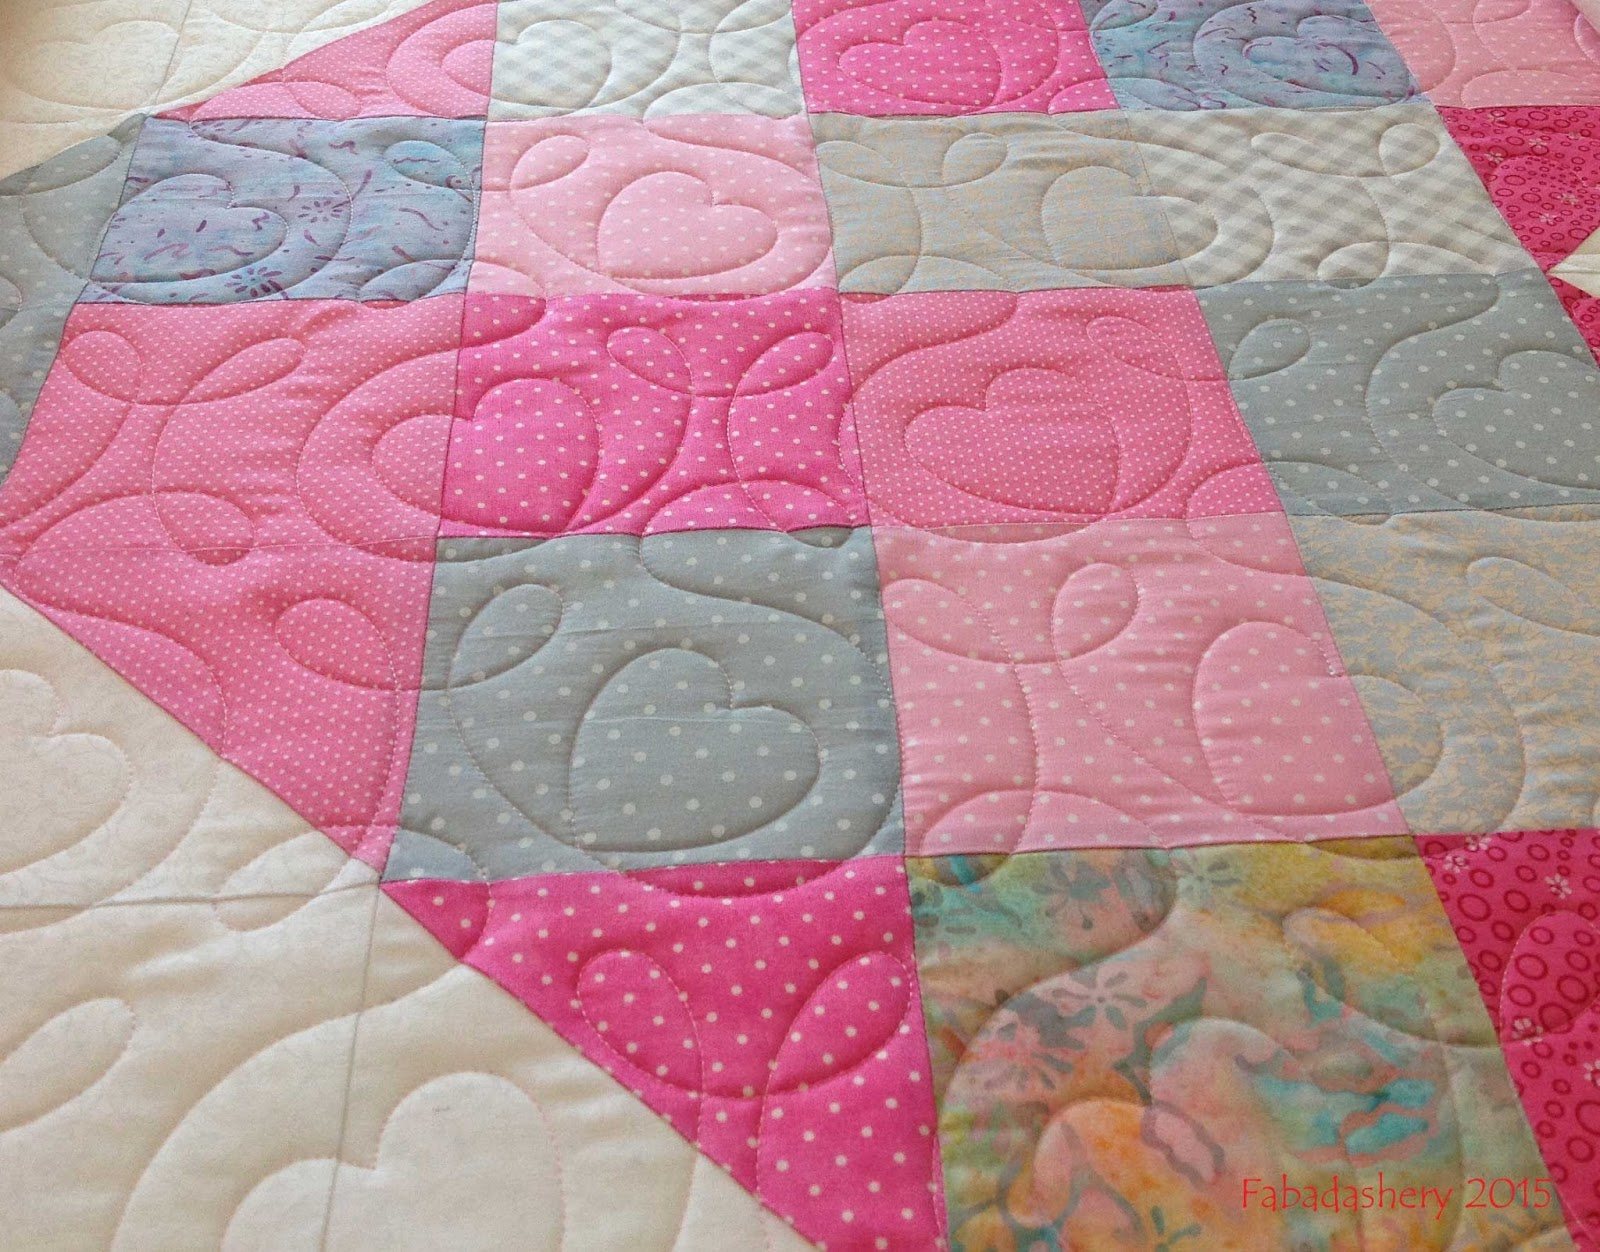 Fabadashery Longarm Quilting: Heart Quilt - Project Linus UK : long arm quilting uk - Adamdwight.com